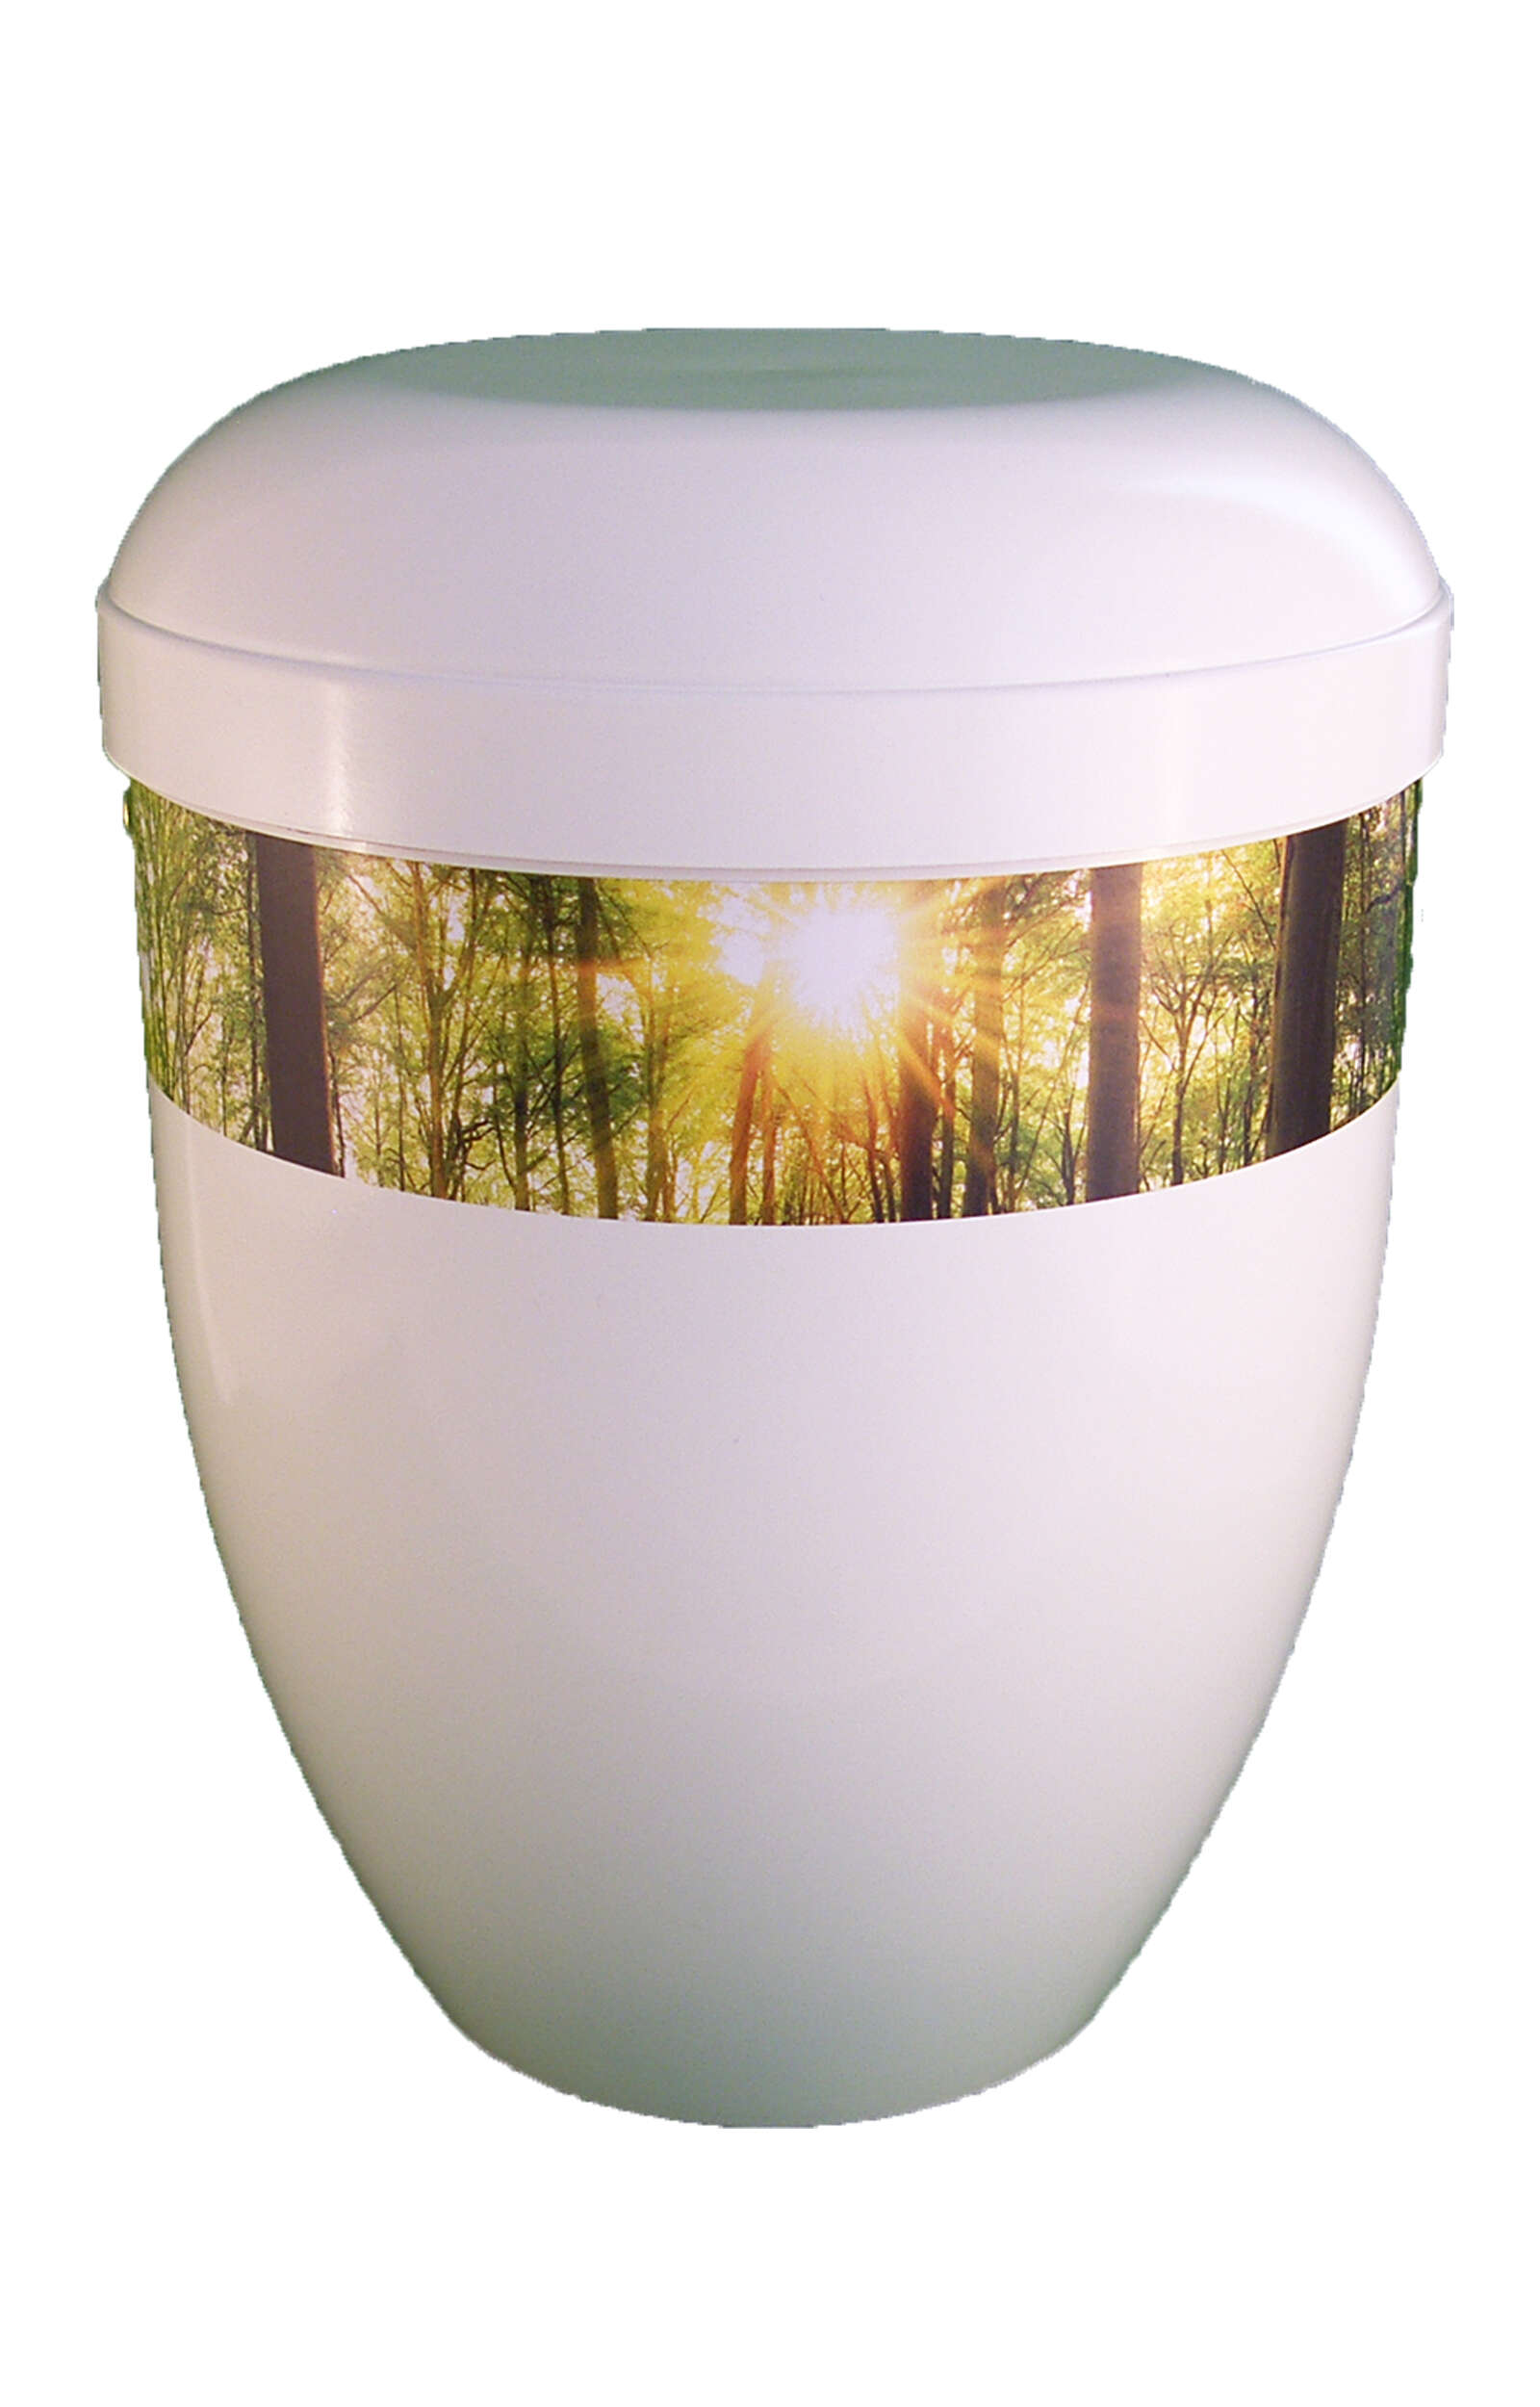 en BWG3705 biodigradable urn panorama forest white glossy funeral urn for human ashes